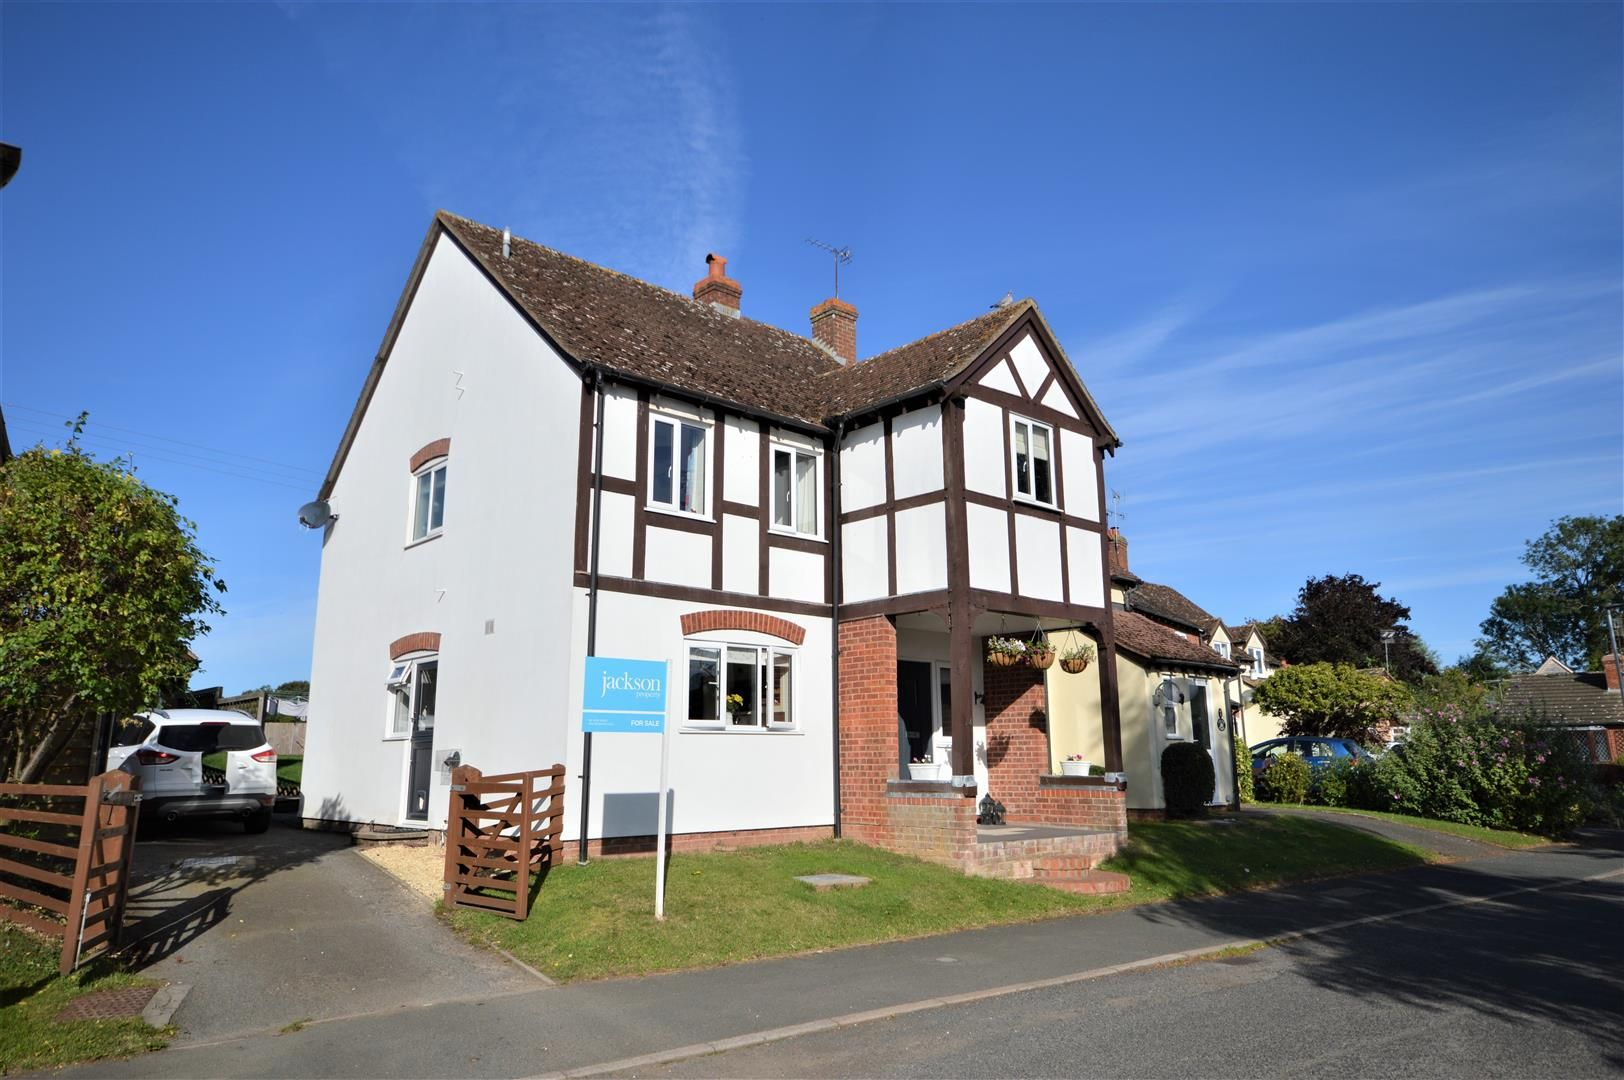 4 bed semi-detached for sale in Luston  - Property Image 1